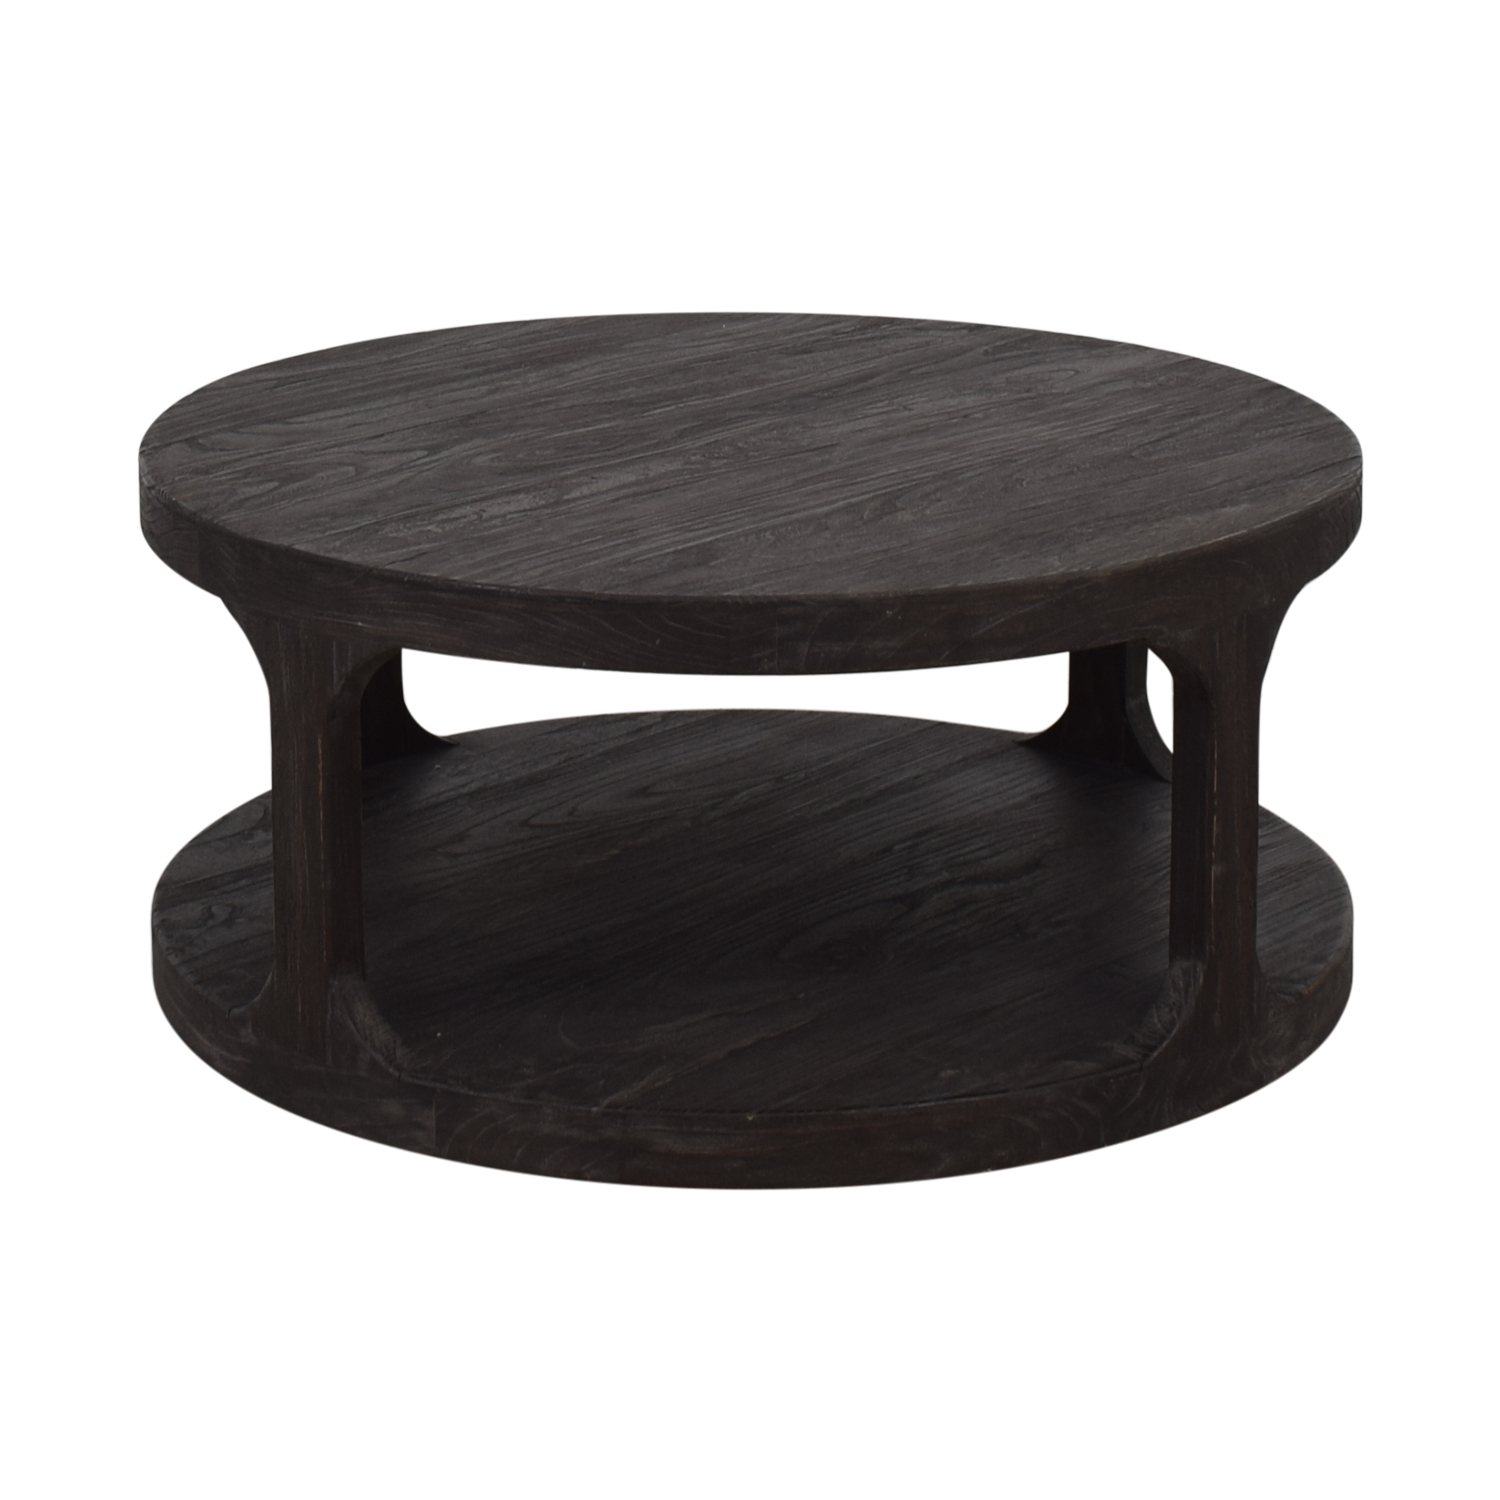 Restoration Hardware Restoration Hardware Martens Round Coffee Table second hand